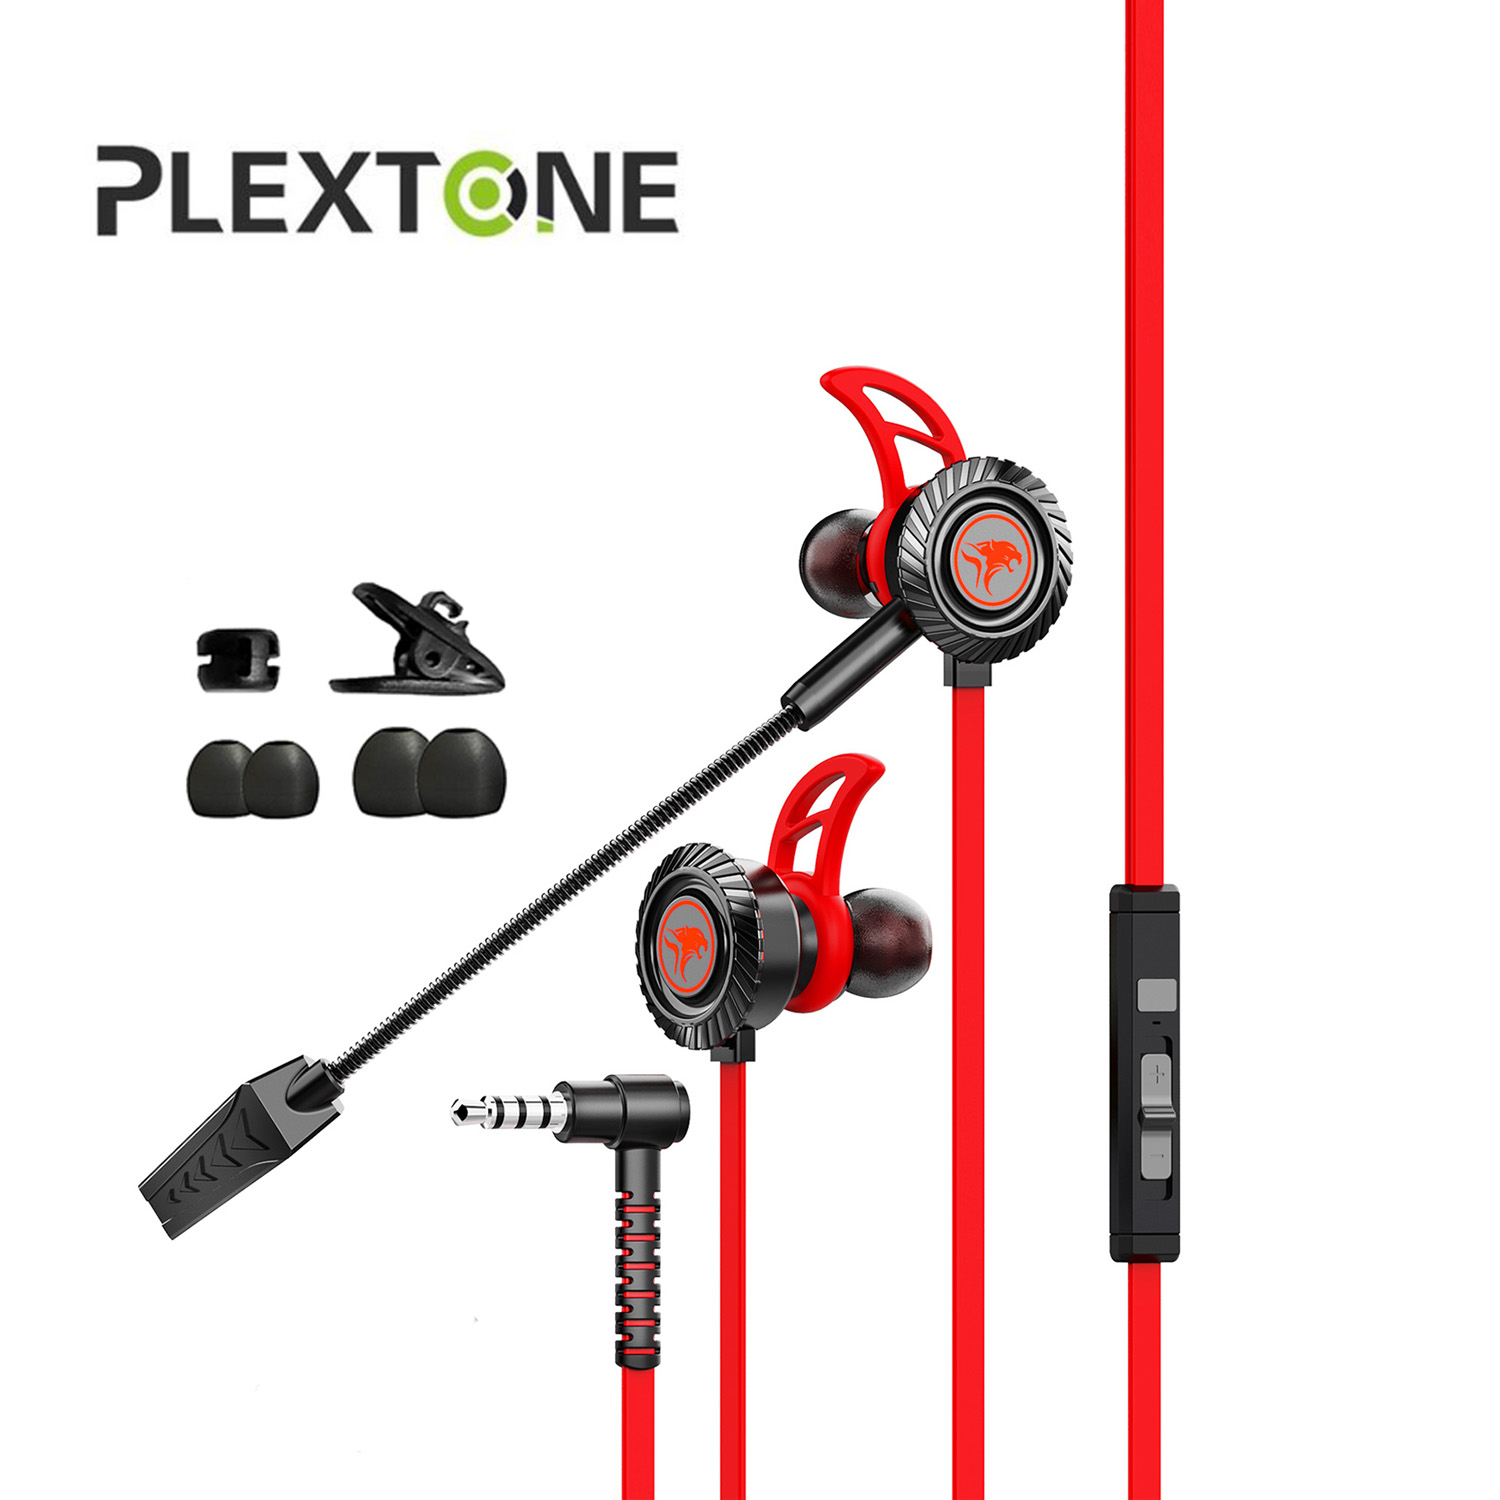 PLEXTONE XMOWI RX1 Gaming Earphones Noise Reduction Headset Headphone Deep Bass Stereo Surround Earbuds